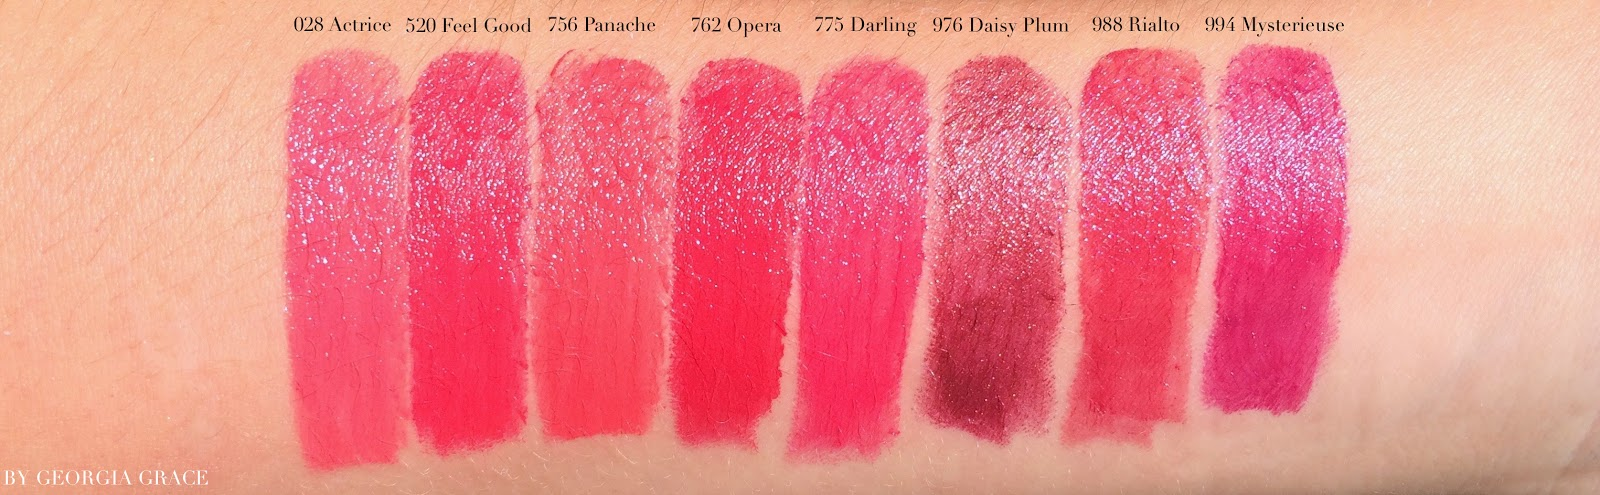 451 Natural C Beautiful Medium Lip Color 881 Pink A Rosy 761 Cherry Strawberry Red